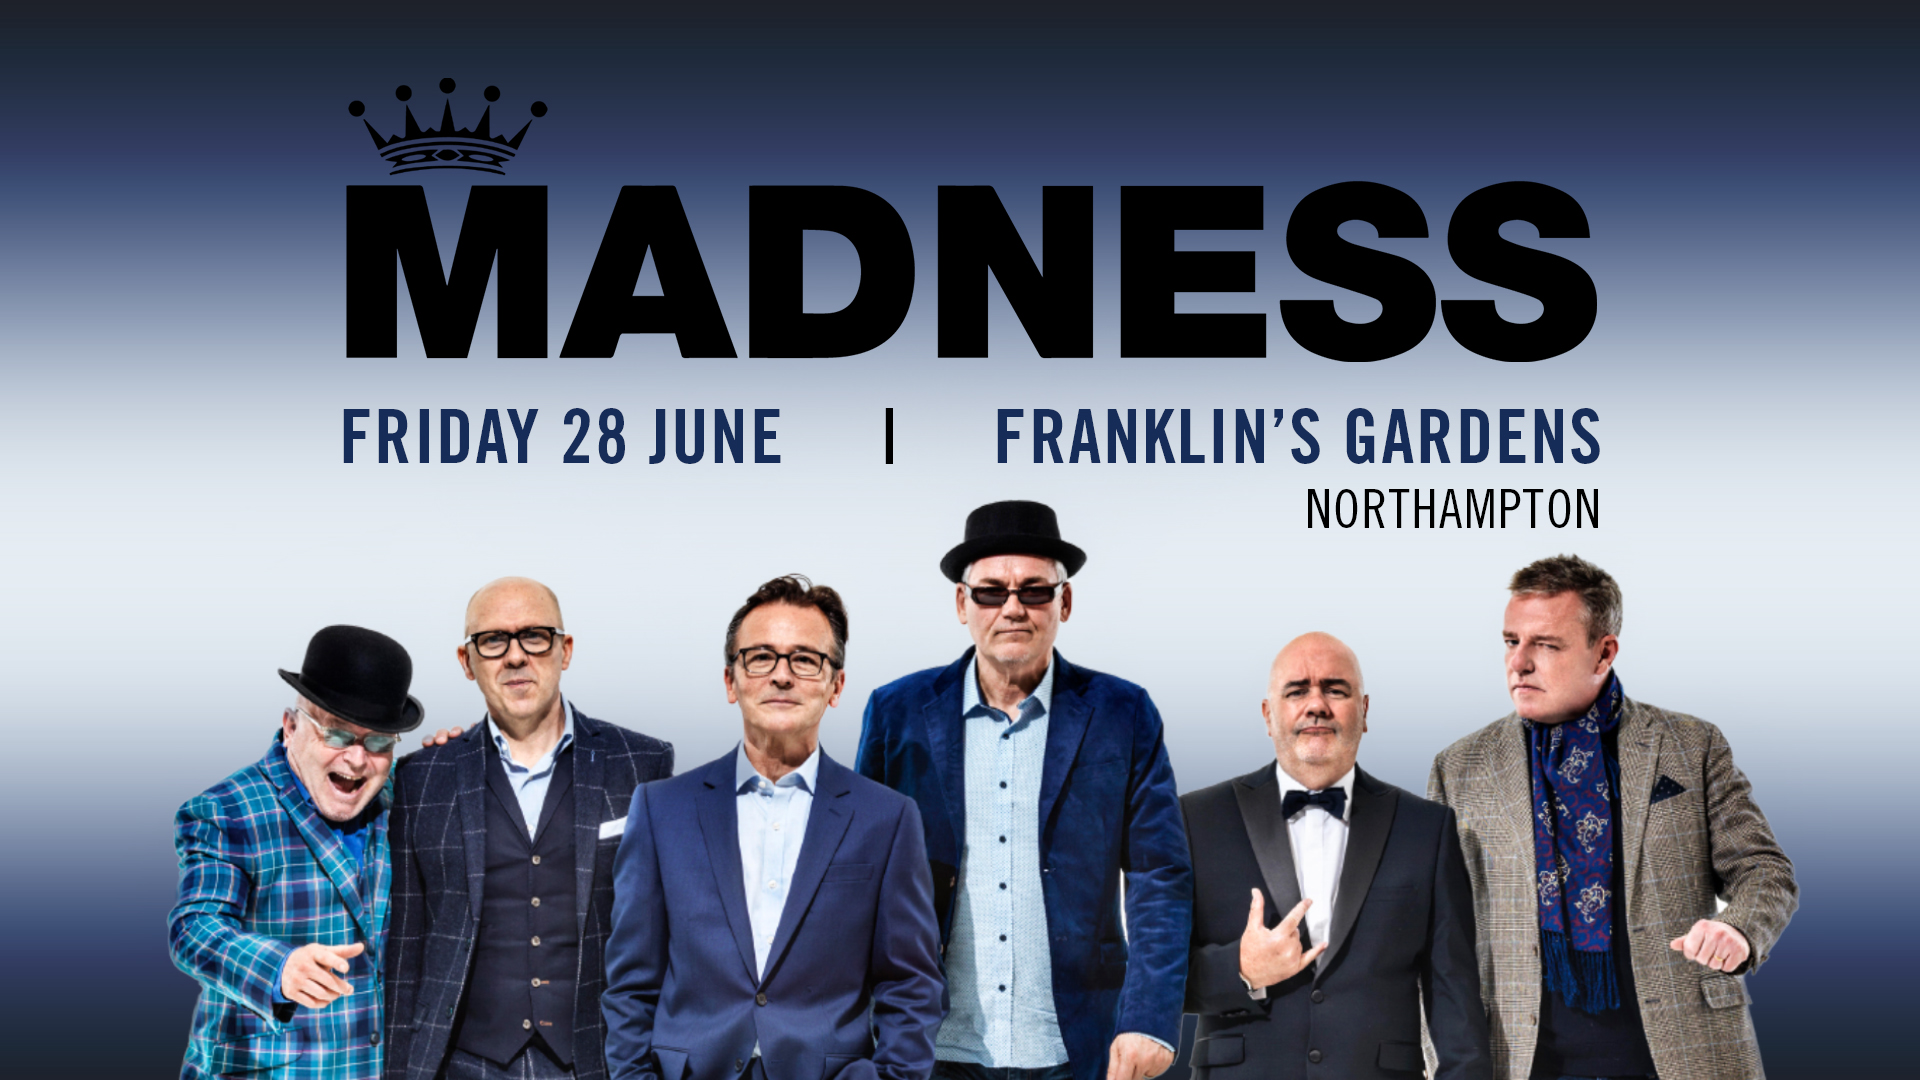 Frequently Asked Questions | Madness at Franklin's Gardens, Northampton on Friday 28th June 2019